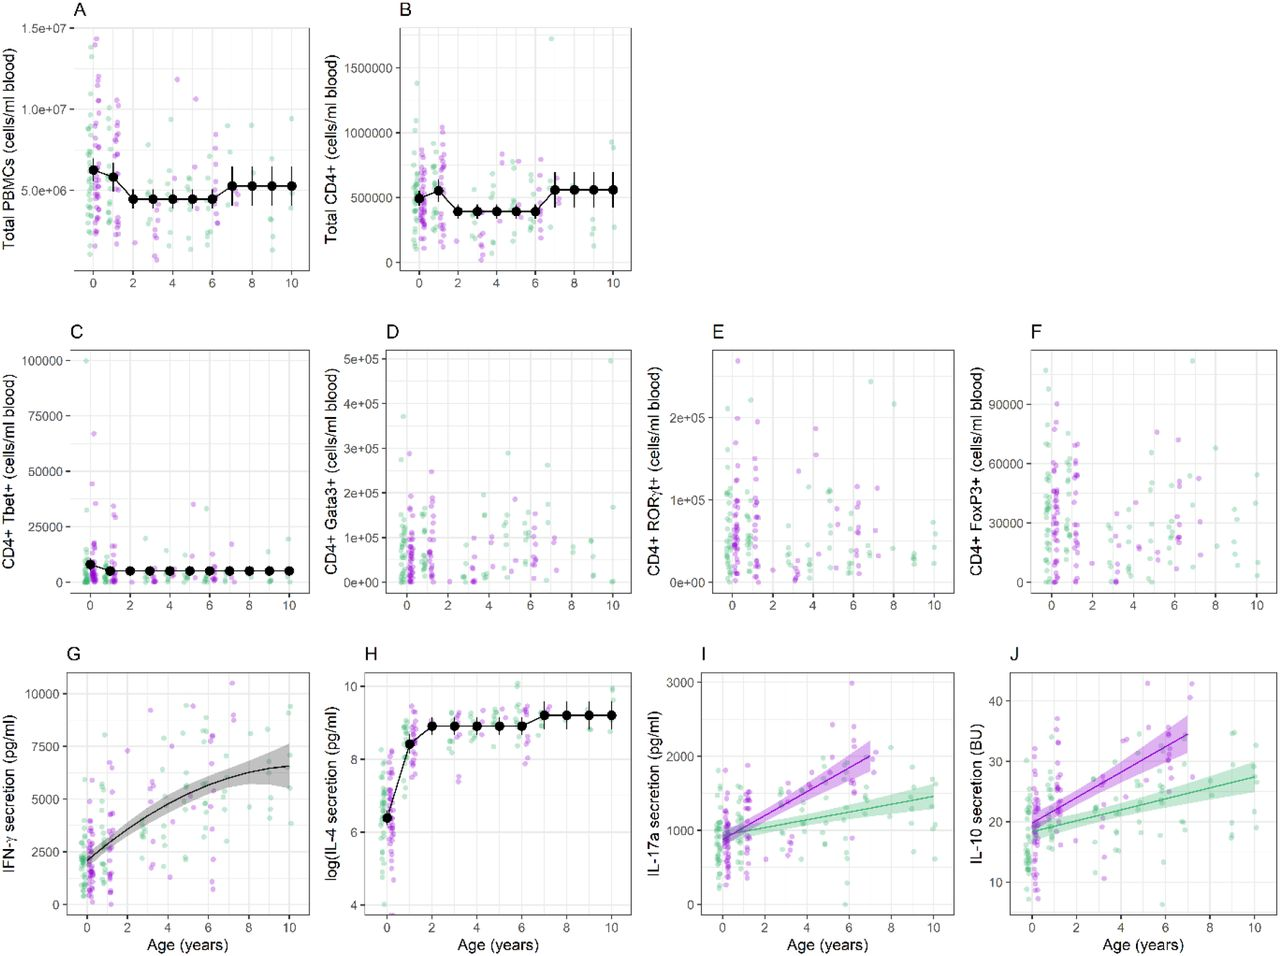 Age- and/or sex-specific variation in (A) PMBC; (B) CD4 + cells; (C) CD4 + Tbet + cells; (D) CD4 + Gata3 + cells; (E) CD4 + RORγt + cells; (F) CD4 + FoxP3 + cells; (G) IFN-γ; (H) IL-4; (I) <t>IL-17A;</t> and (J) IL-10. Points show raw data, with green representing females and purple showing males. Large points connected by lines show estimates ±95%CI from a model where age was fitted as a factor (with 2 or 4 levels) and lines with shaded areas show estimates ±95%CI from models where age was fitted as a continuous variable; green lines represent females and purple lines males. For model details, see Tables S4 S5.